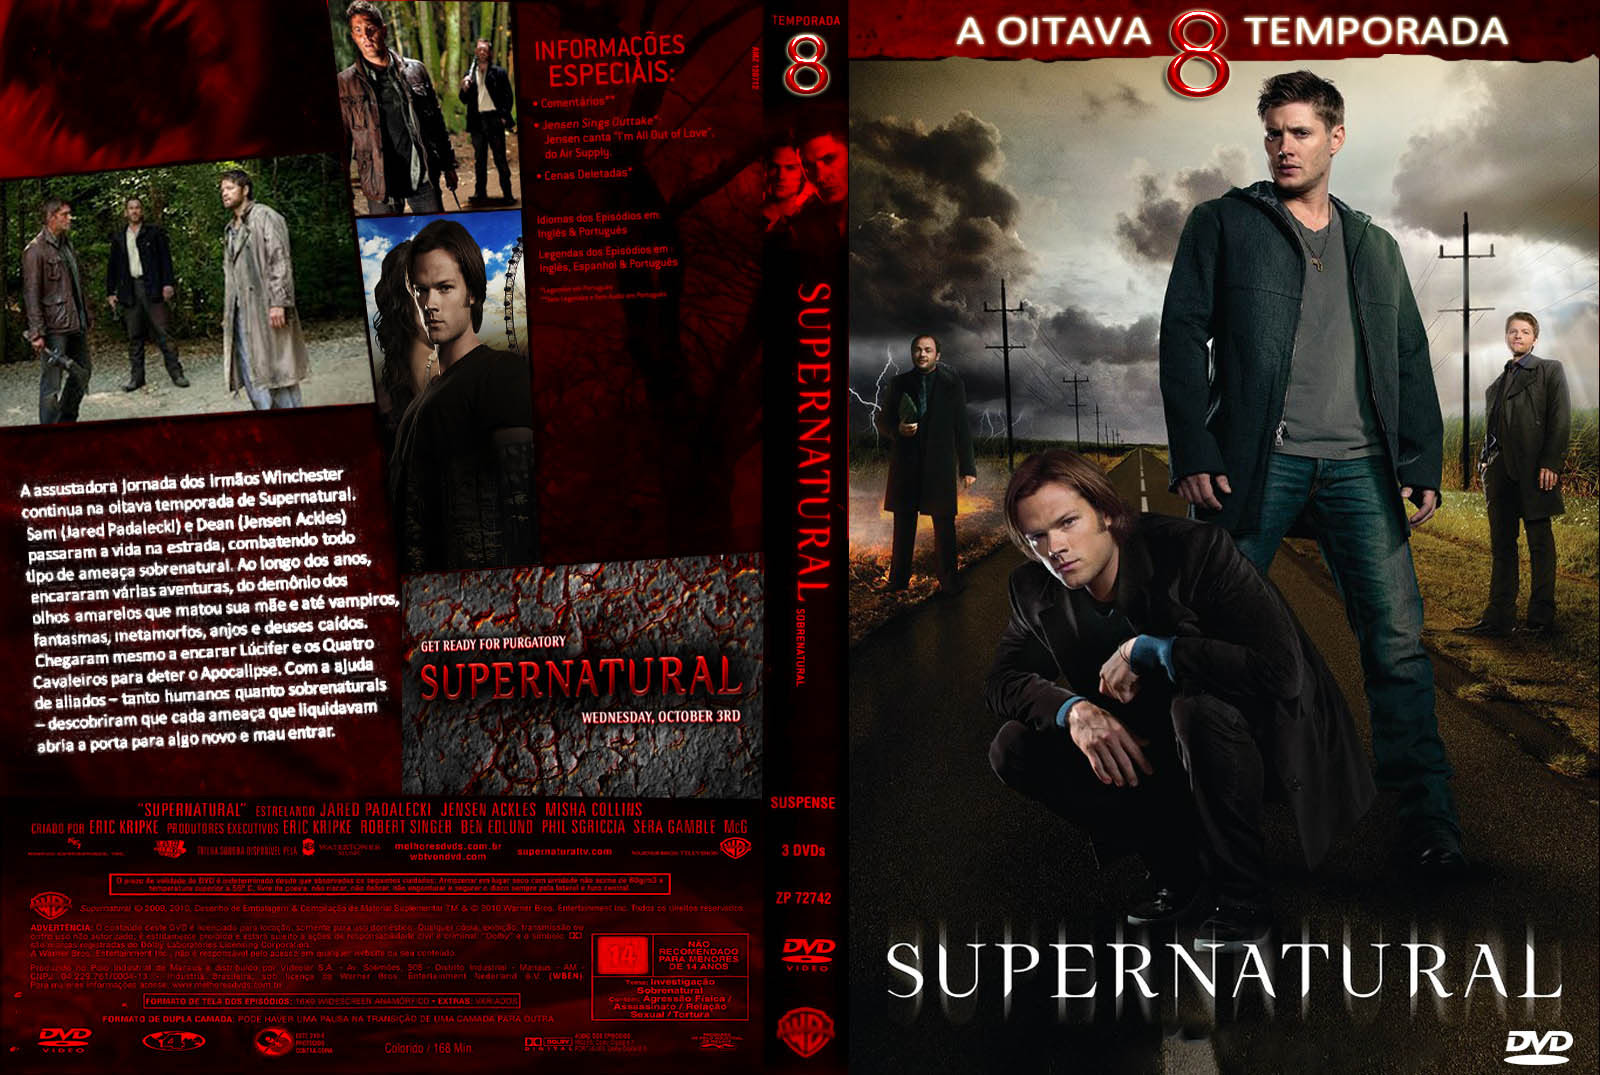 Supernatural 8º Temporada Torrent - DVDRip Dublado (2013)